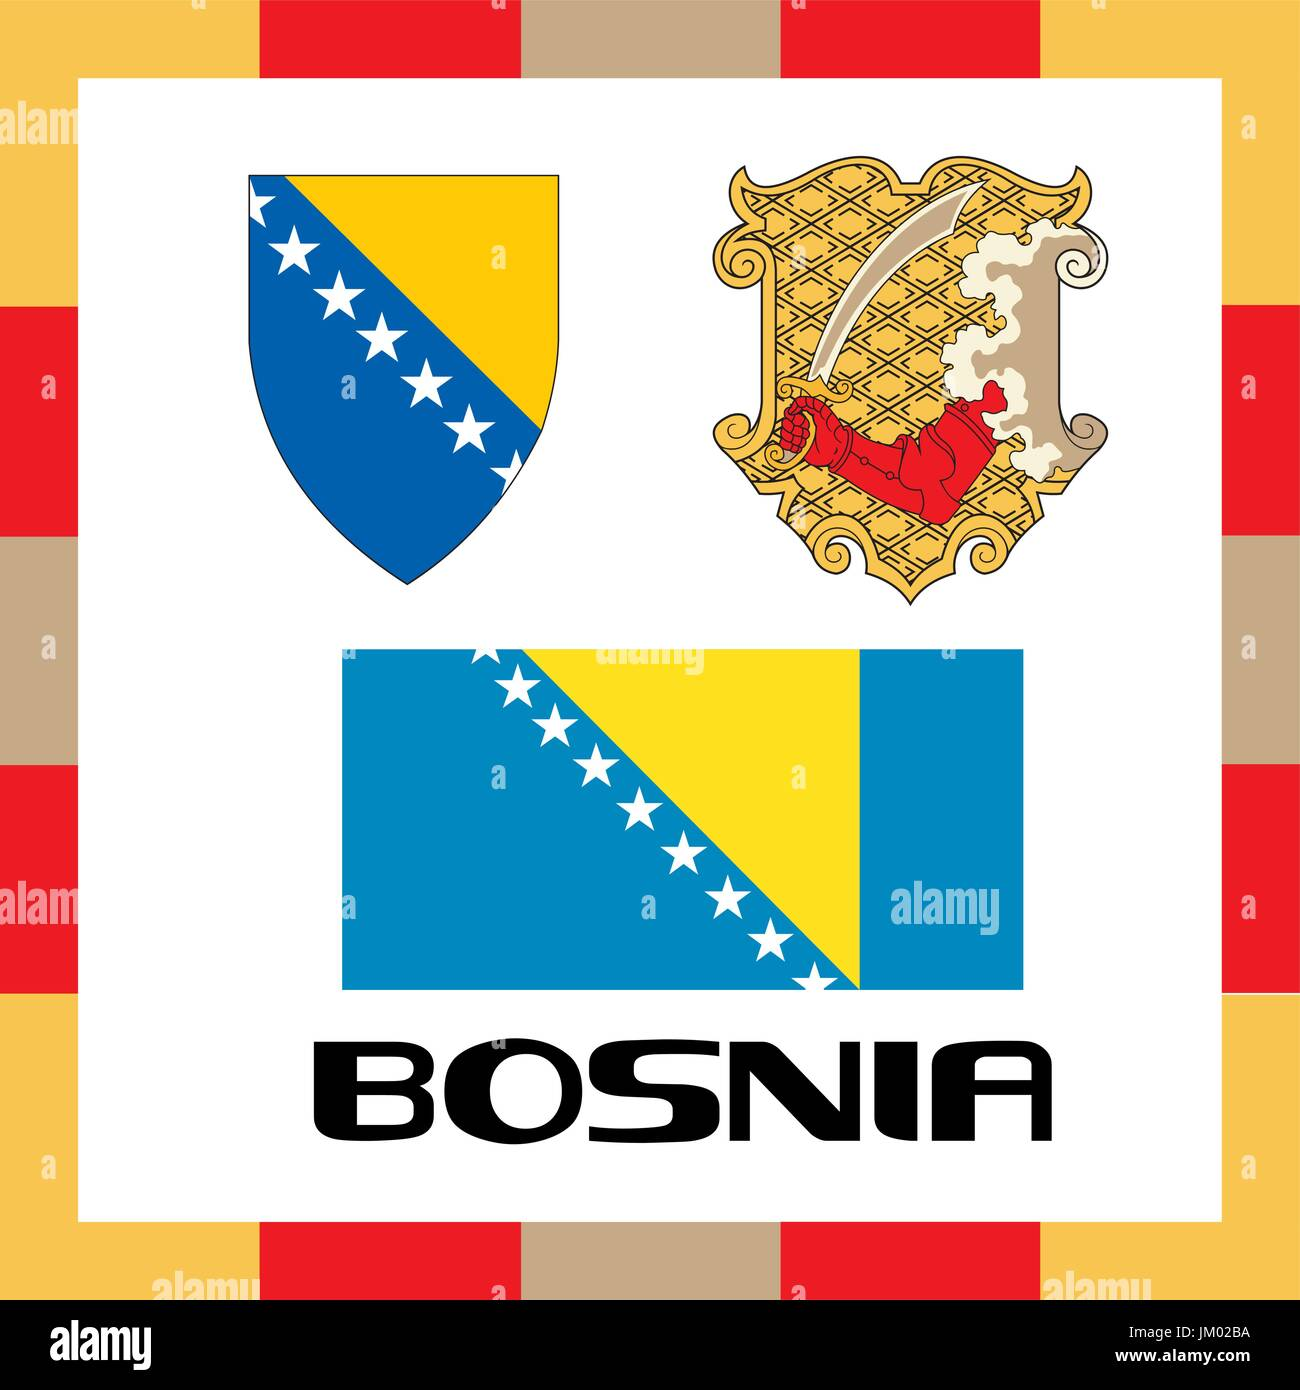 Official government ensigns of Bosnia - Stock Vector